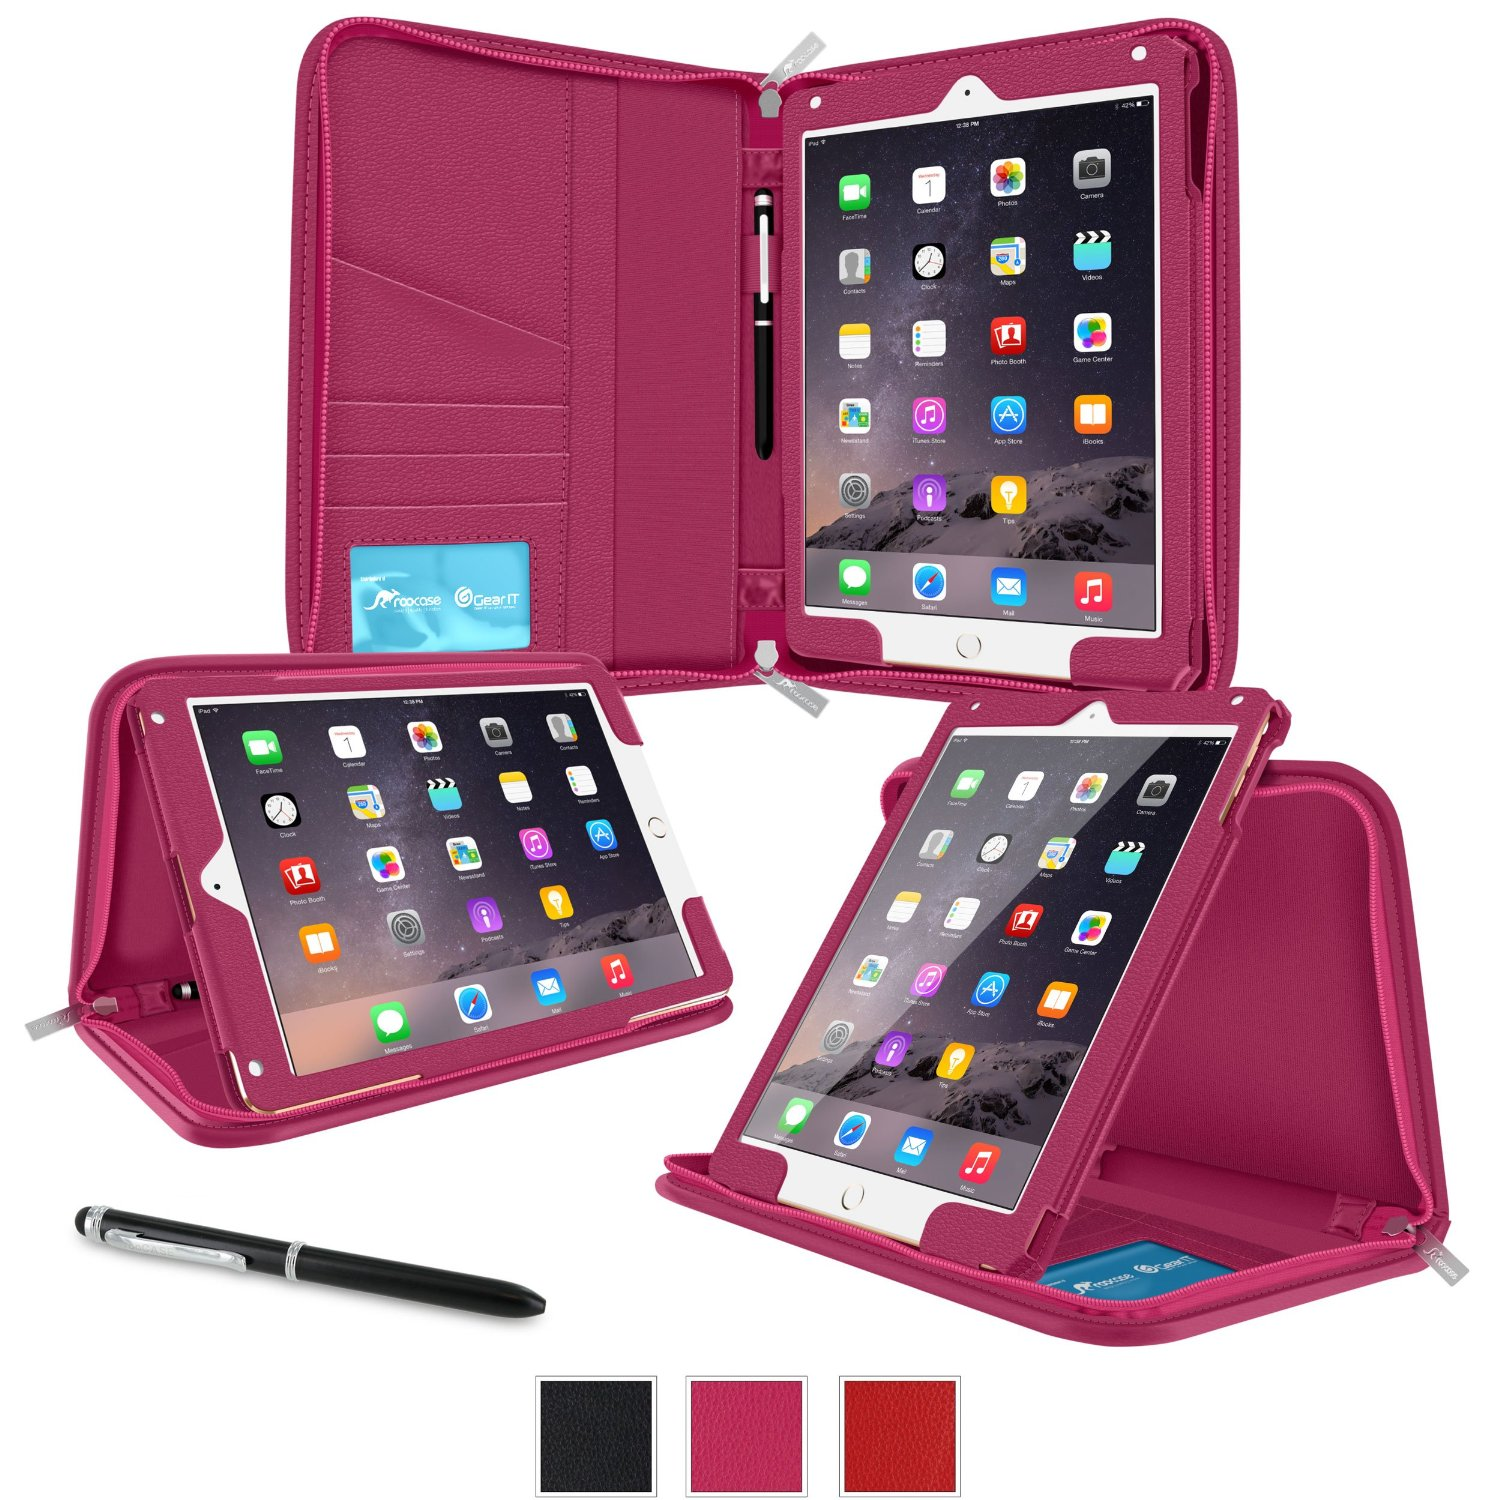 Top 15 Best Apple Ipad Pro Cases And Covers